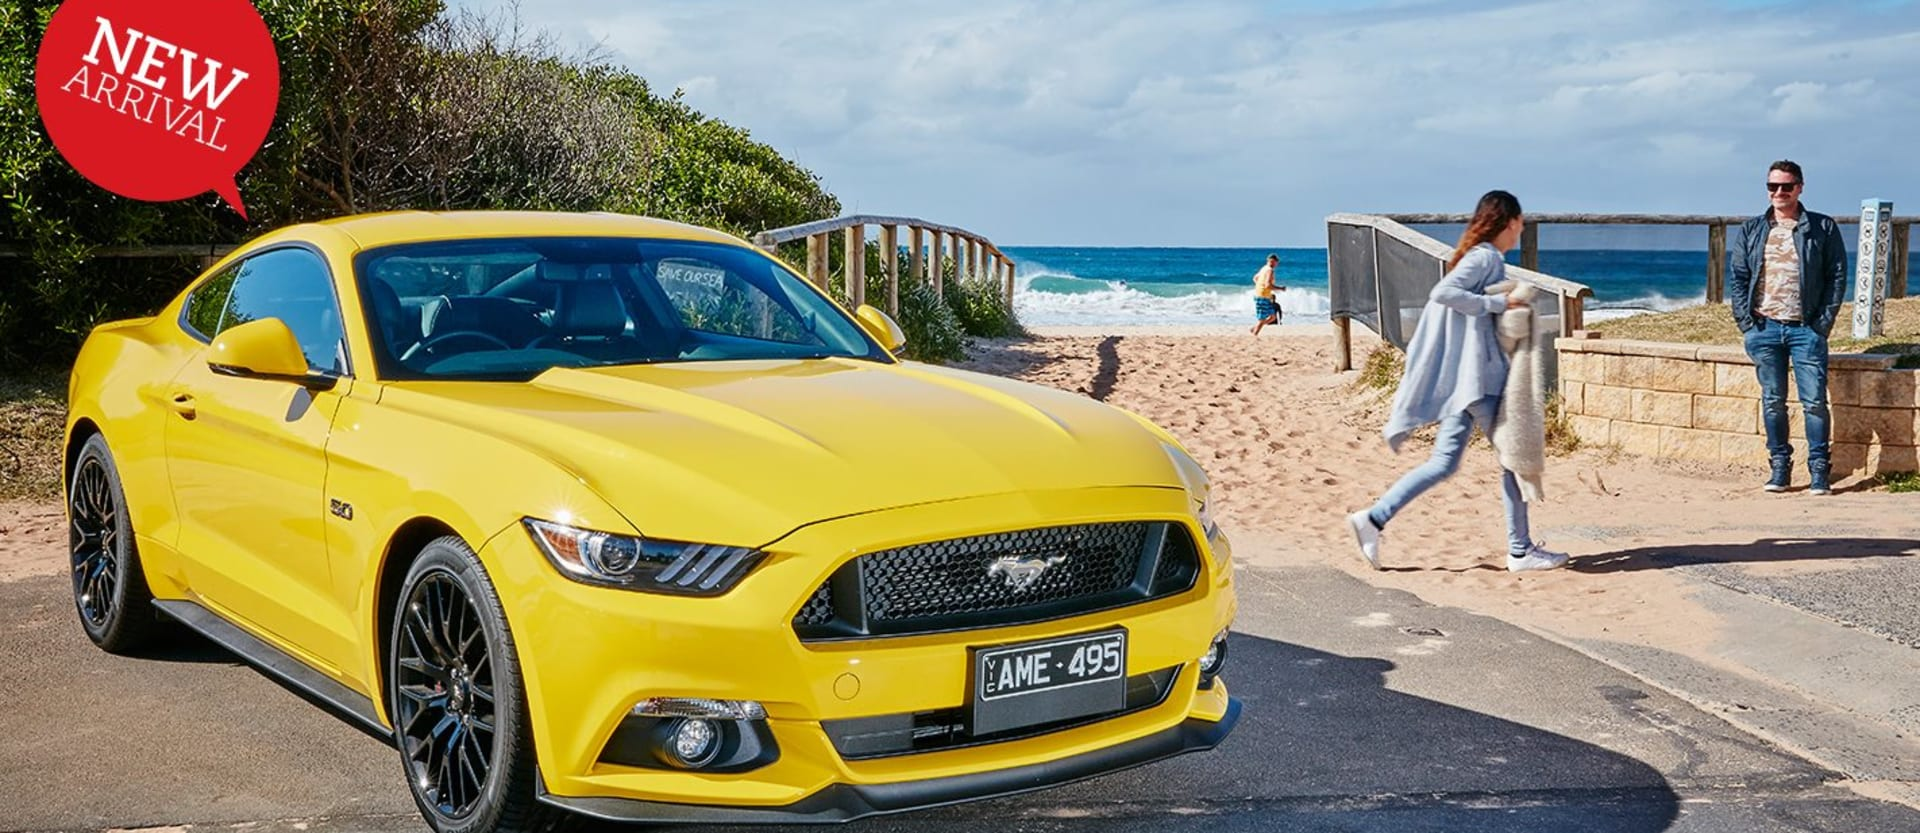 2017 Ford Mustang GT long-term review